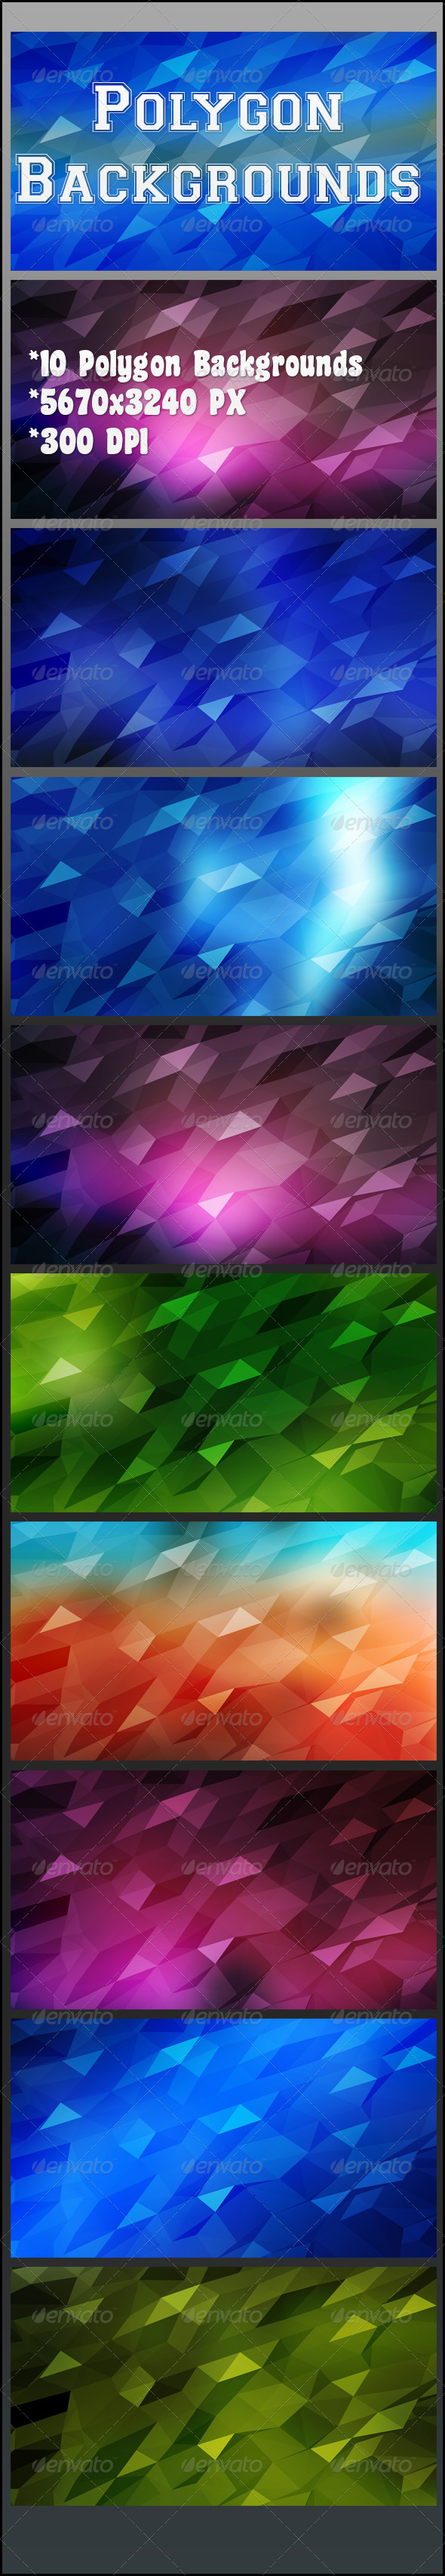 GraphicRiver Polygon Backgrounds 8216809